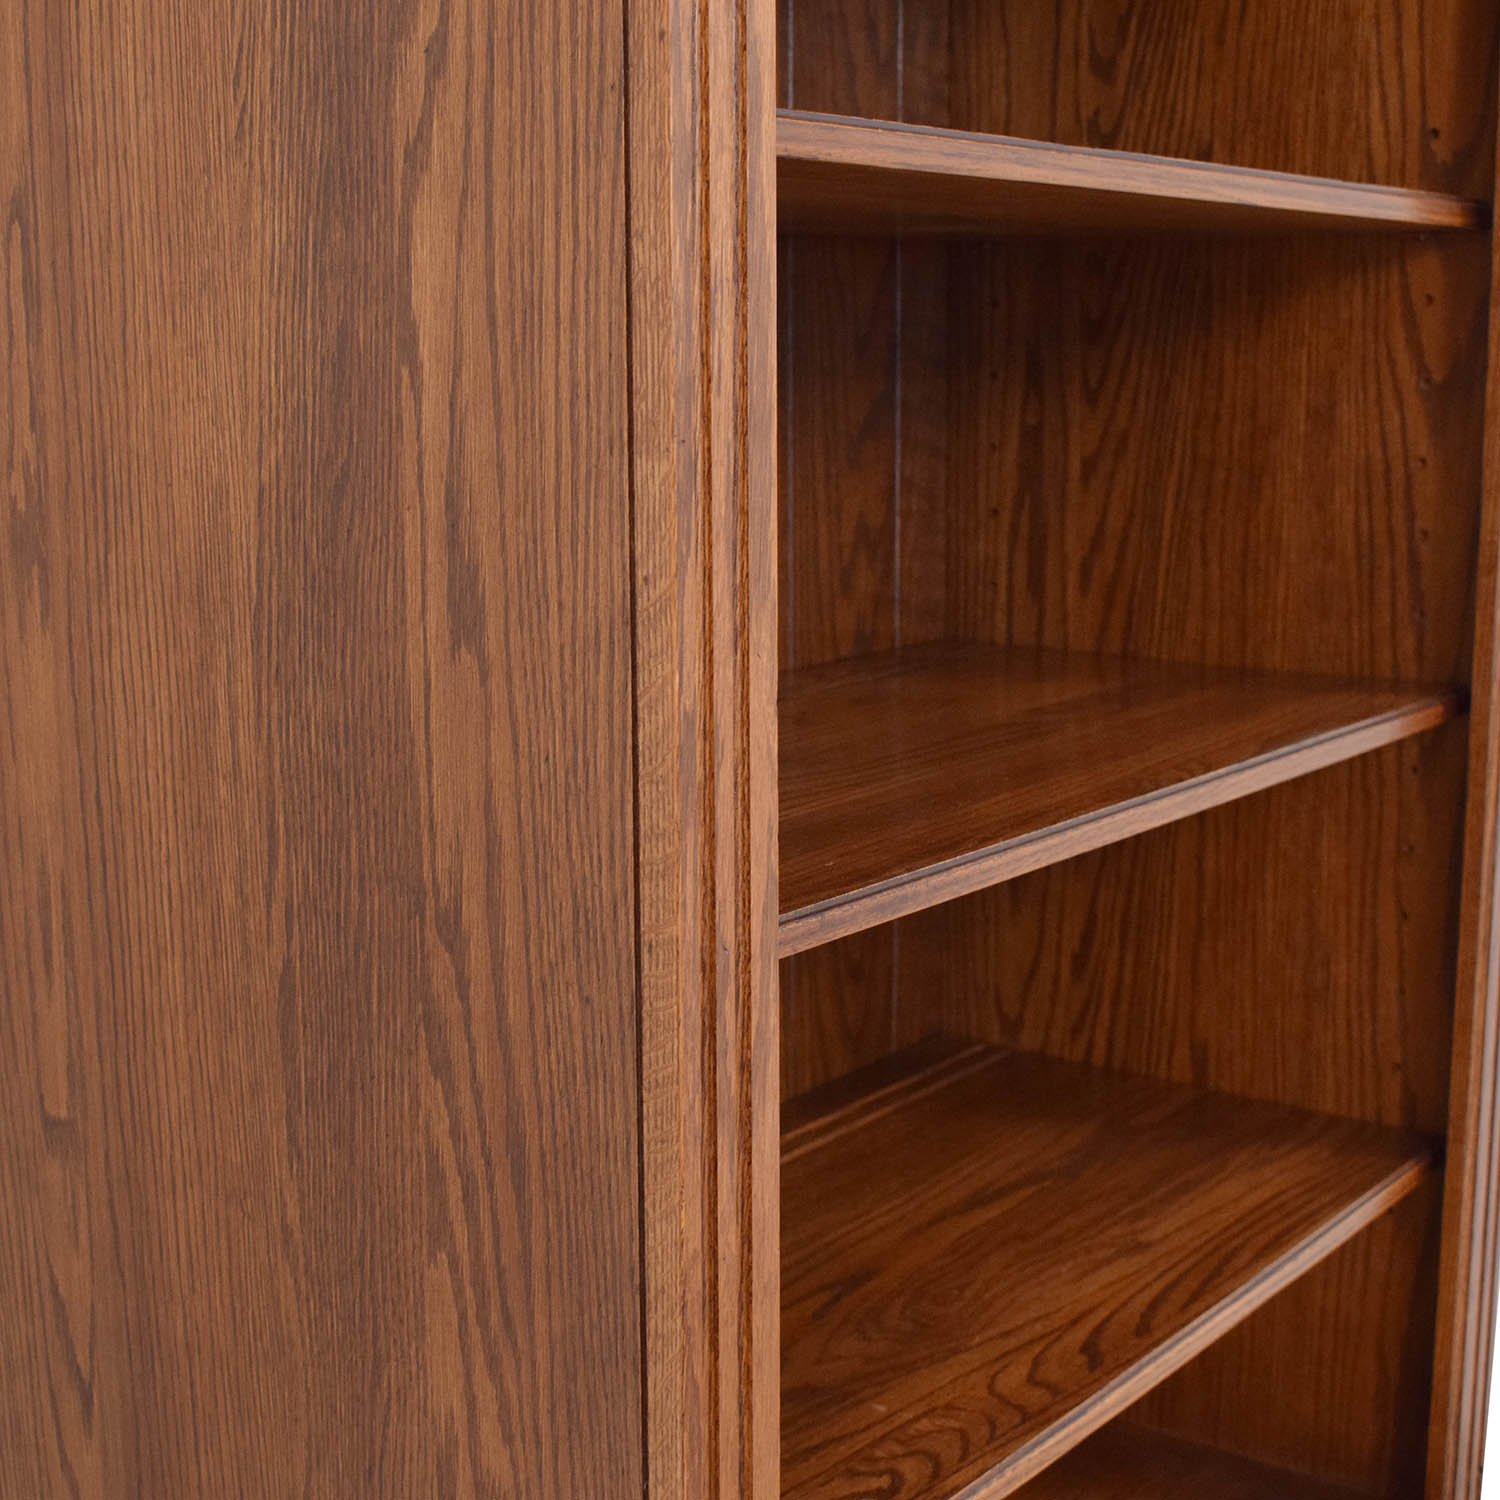 Ethan Allen Georgian Court Open Bookcase with Drawers